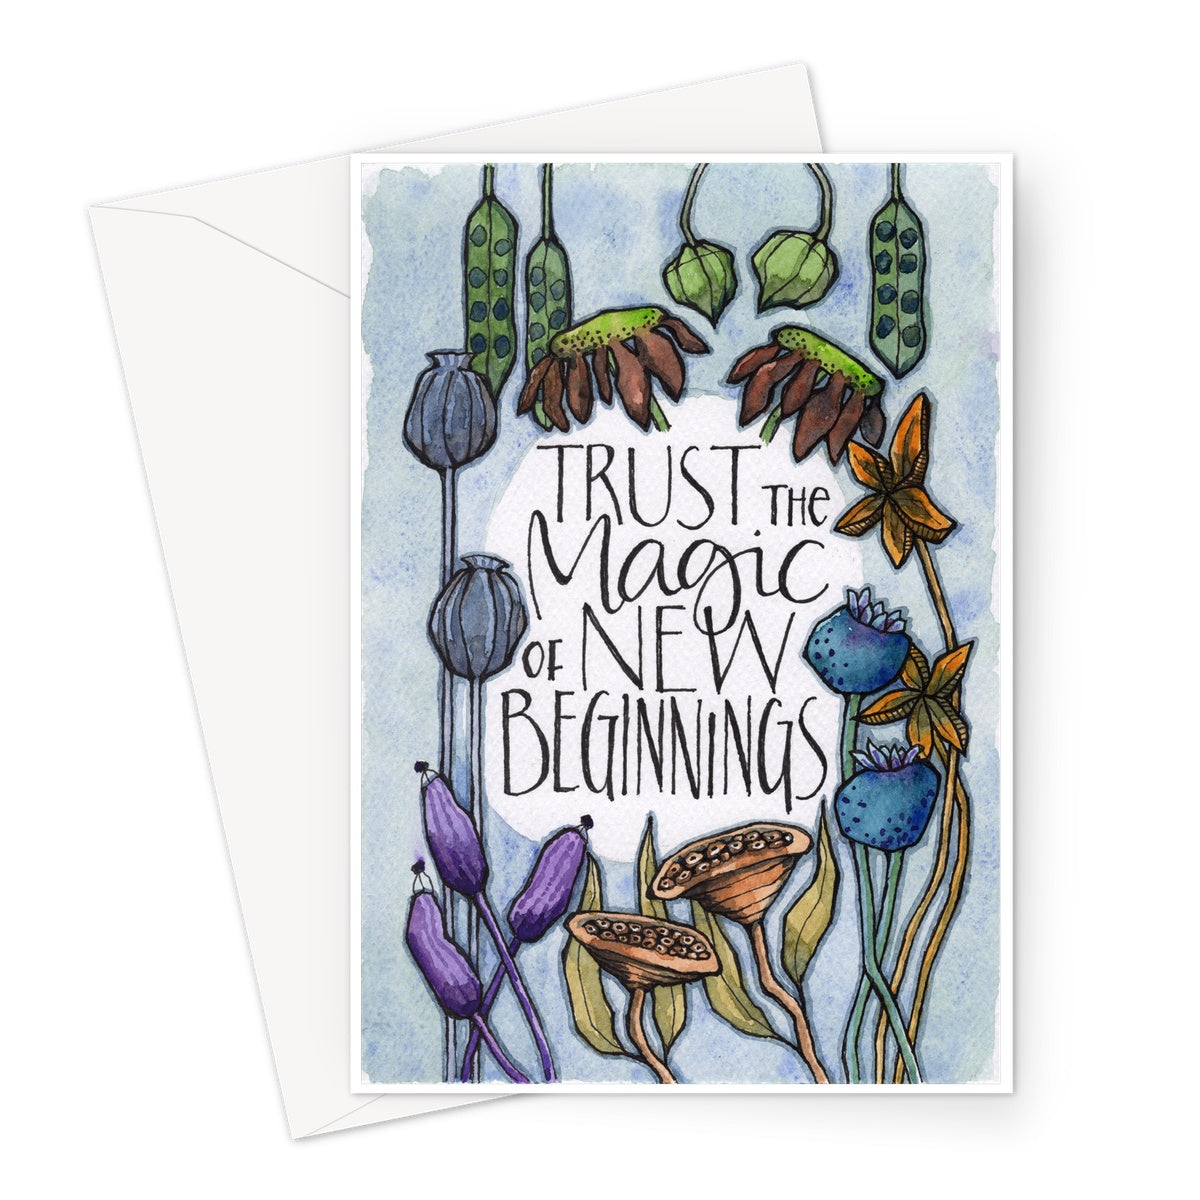 "A hand-drawn saying, ""Trust the Magic of New Beginnings"", accompanies a watercolour illustration of wonderfully odd-shaped seed pods, indicating new birth, fresh starts, and a positive direction for the future."